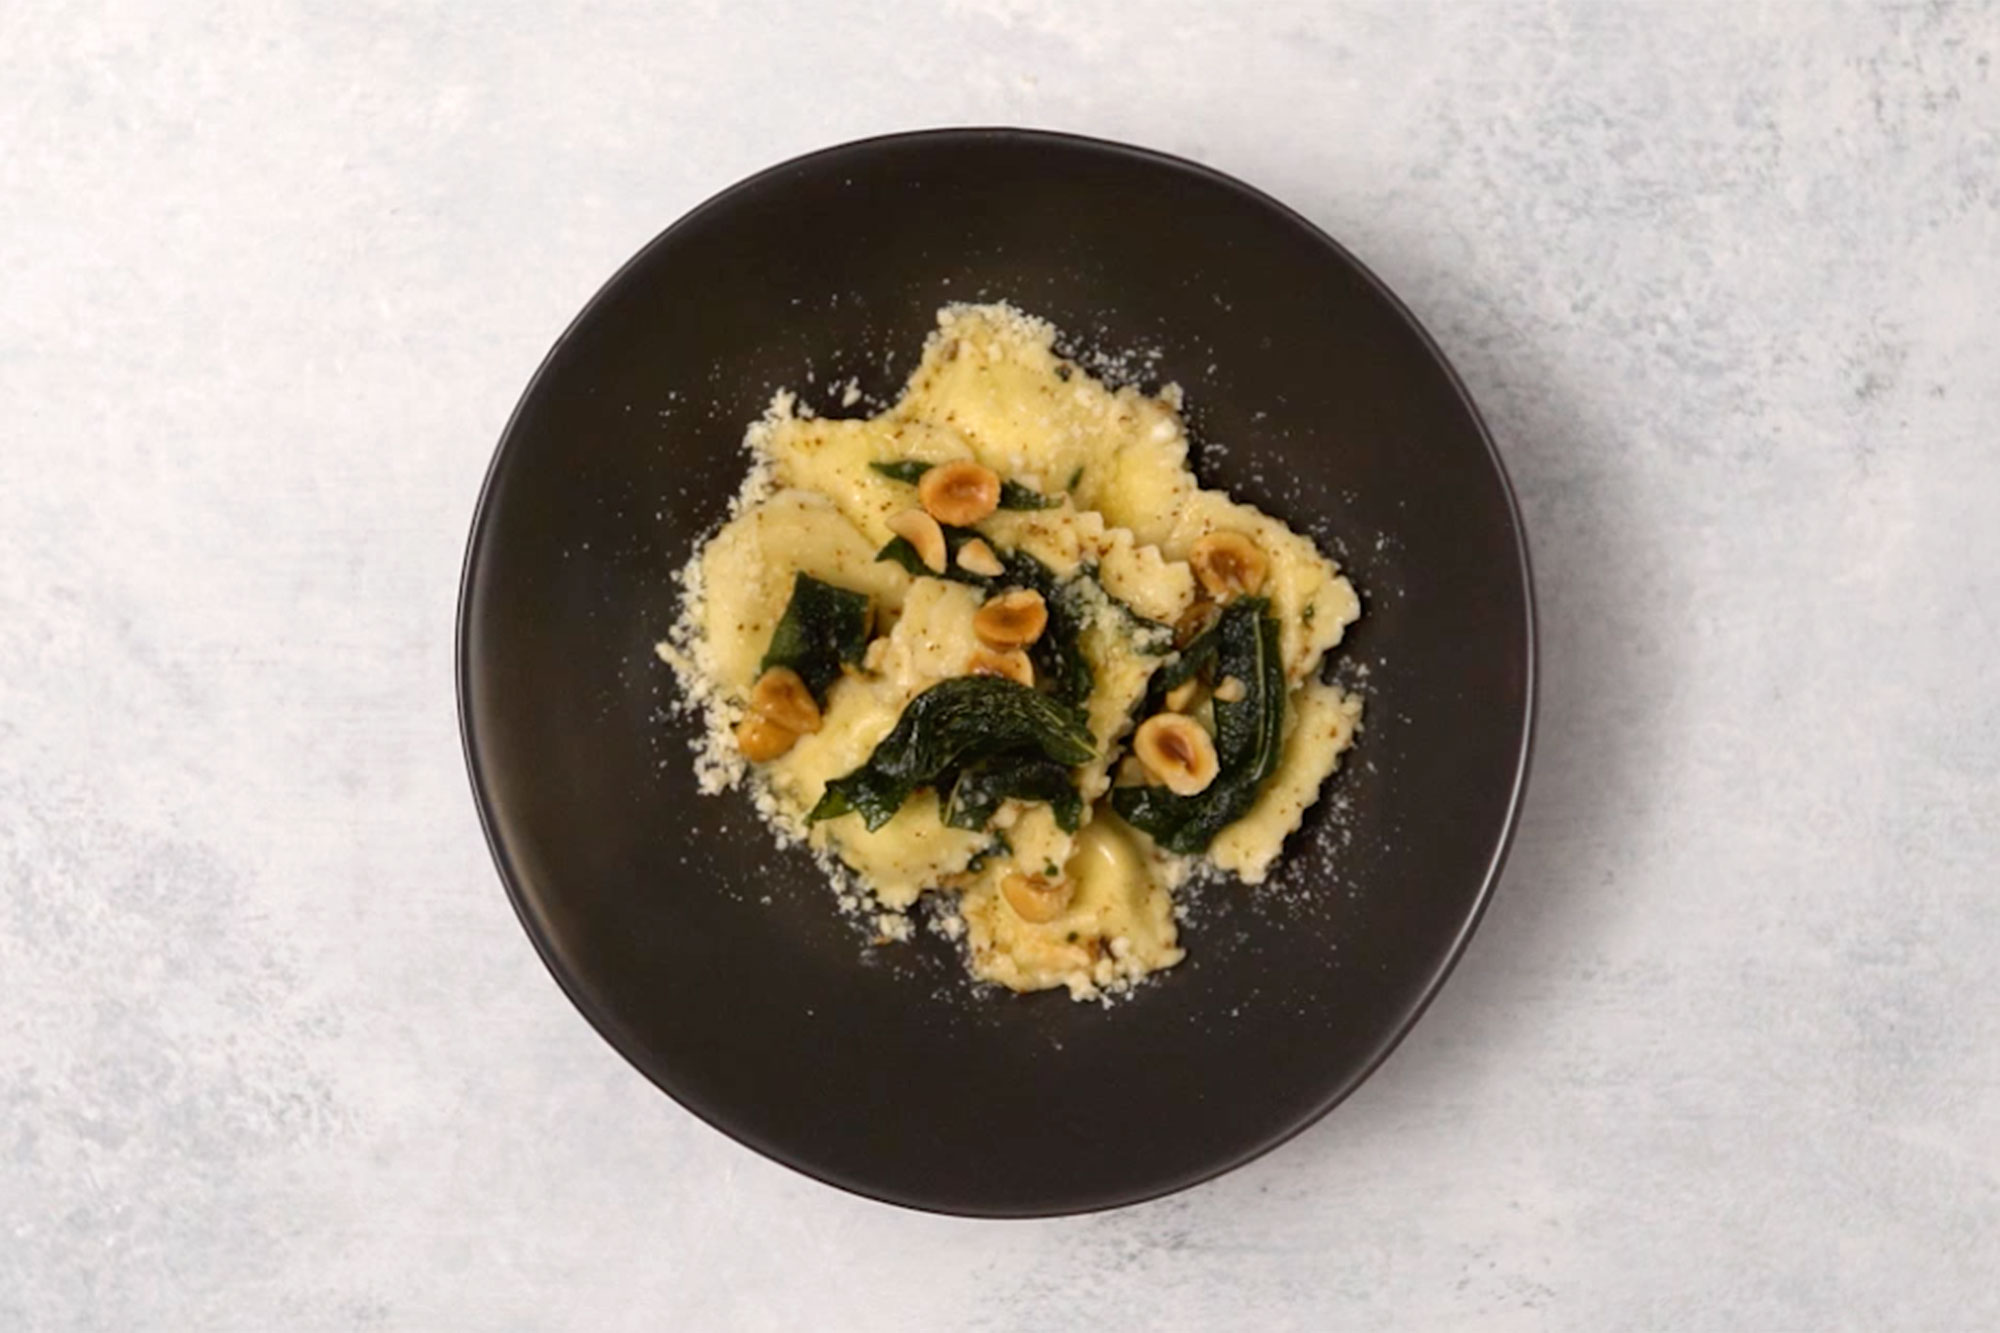 How to Make Fresh Ravioli from Scratch